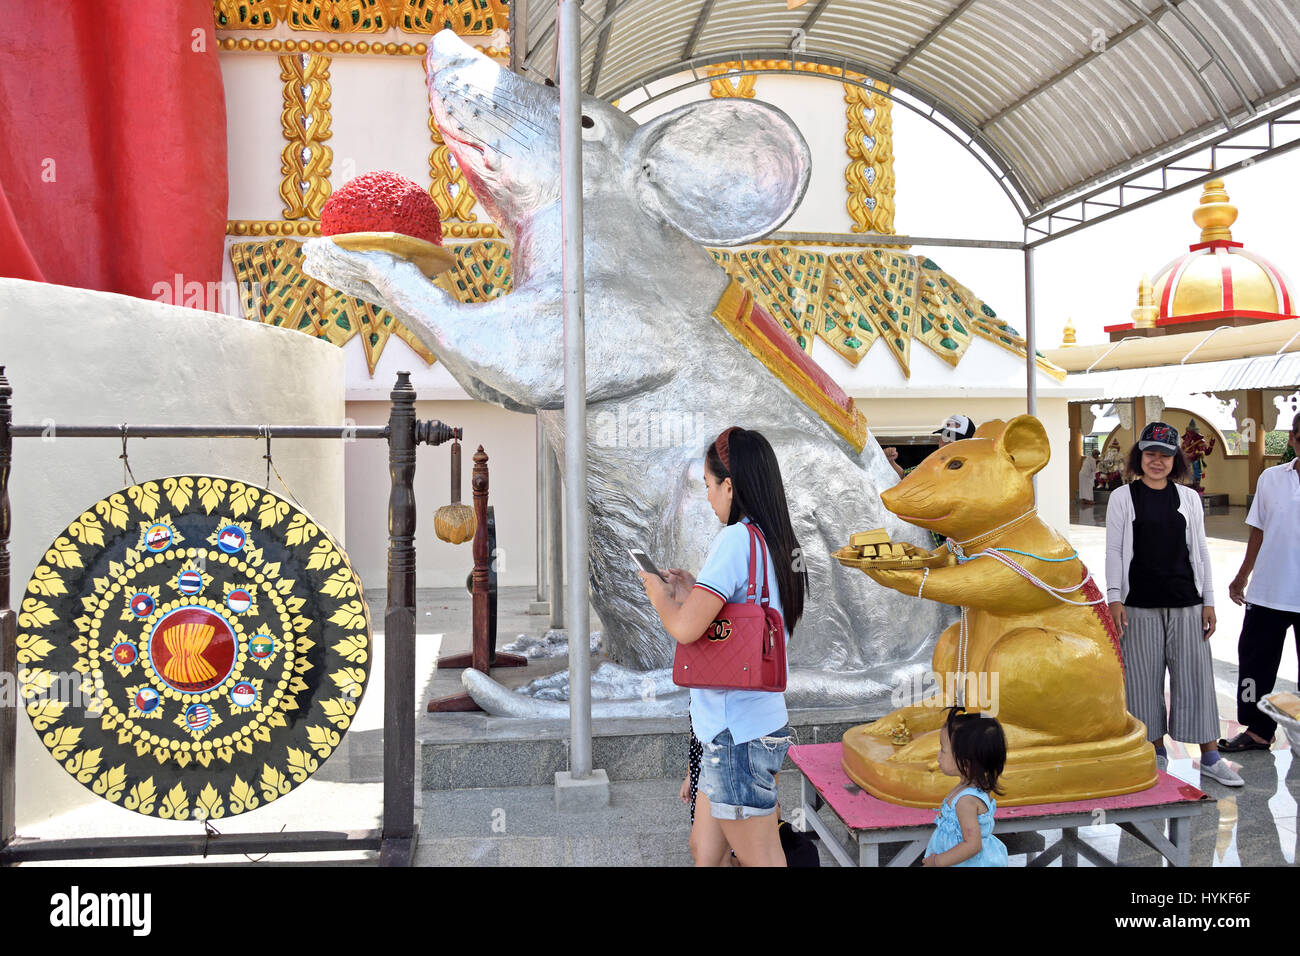 A shrine dedicated to rodents at the base of the pink elephant (Ganesh) structure in Wat Phrong Akat in Central - Stock Image